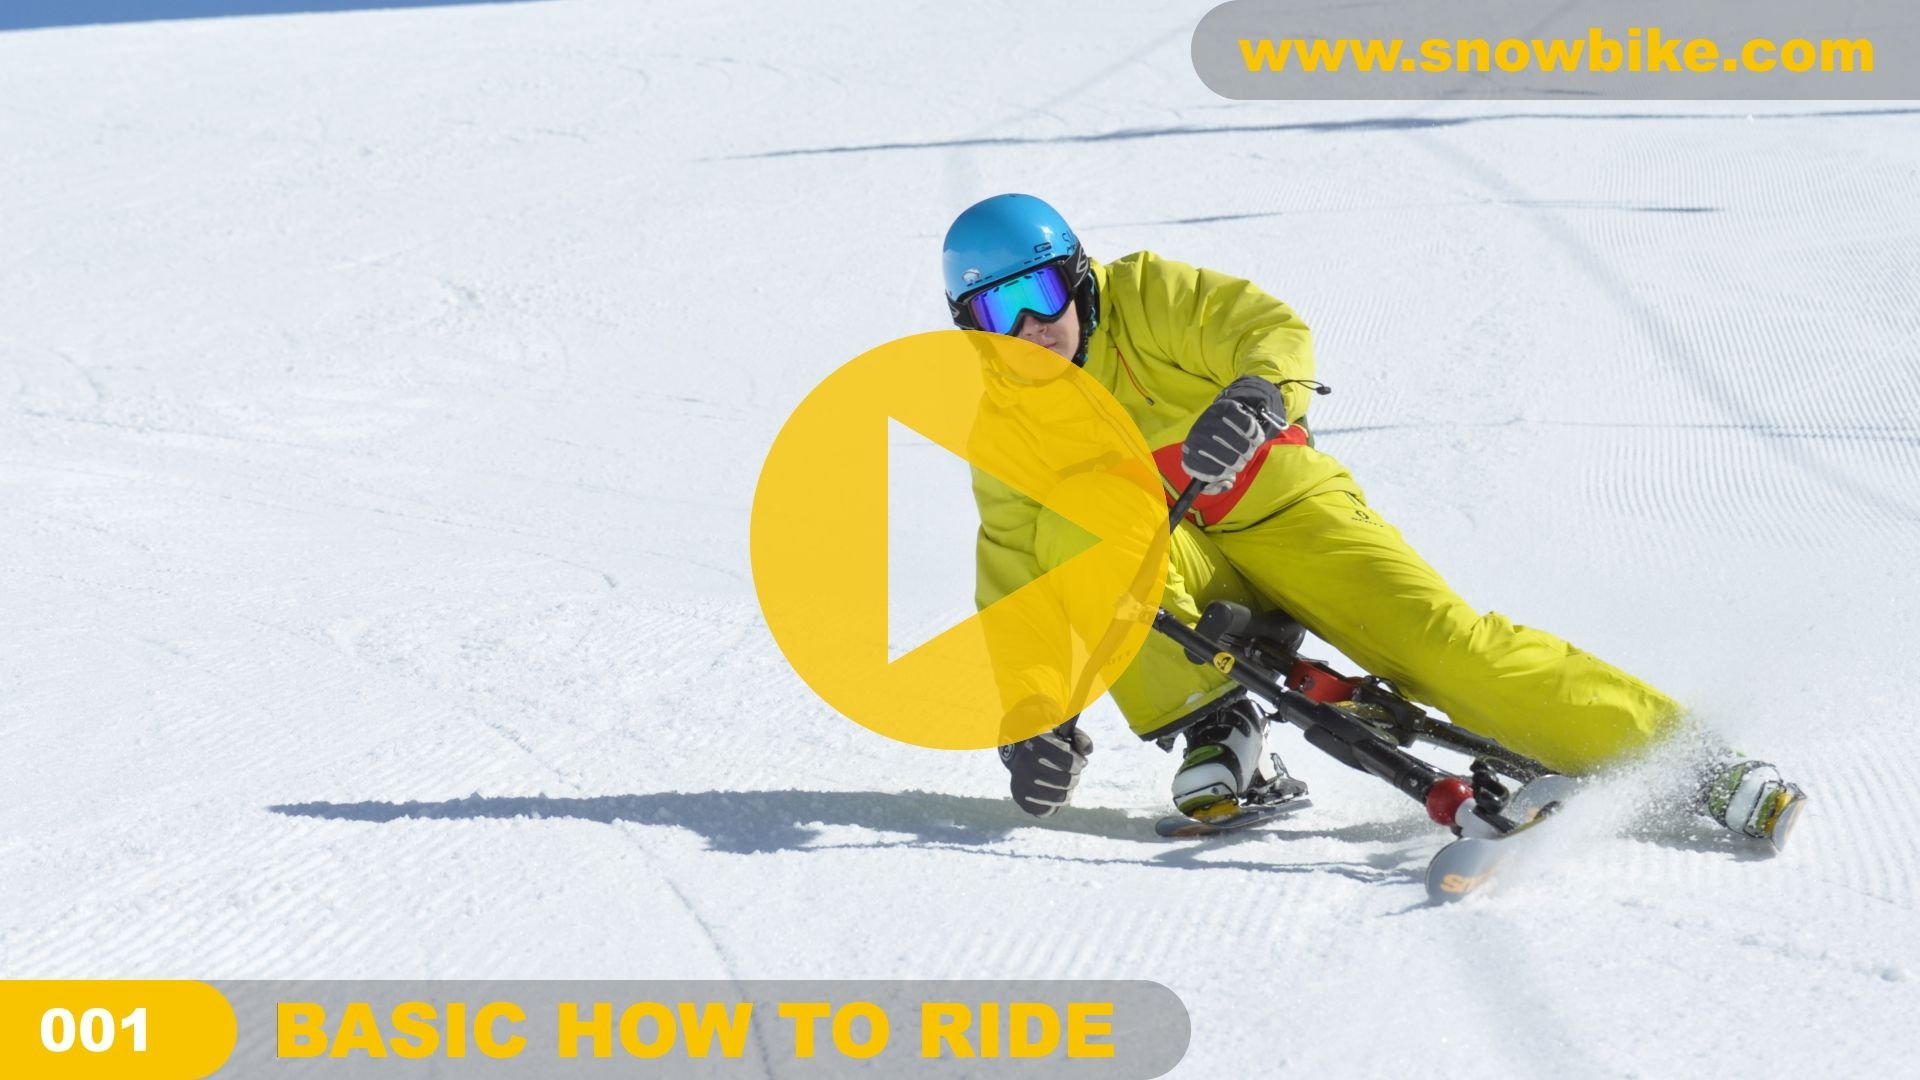 snowbike-basics-how-to-ride-cover4D4DD86E-951B-B813-7CC0-492F68862850.jpg